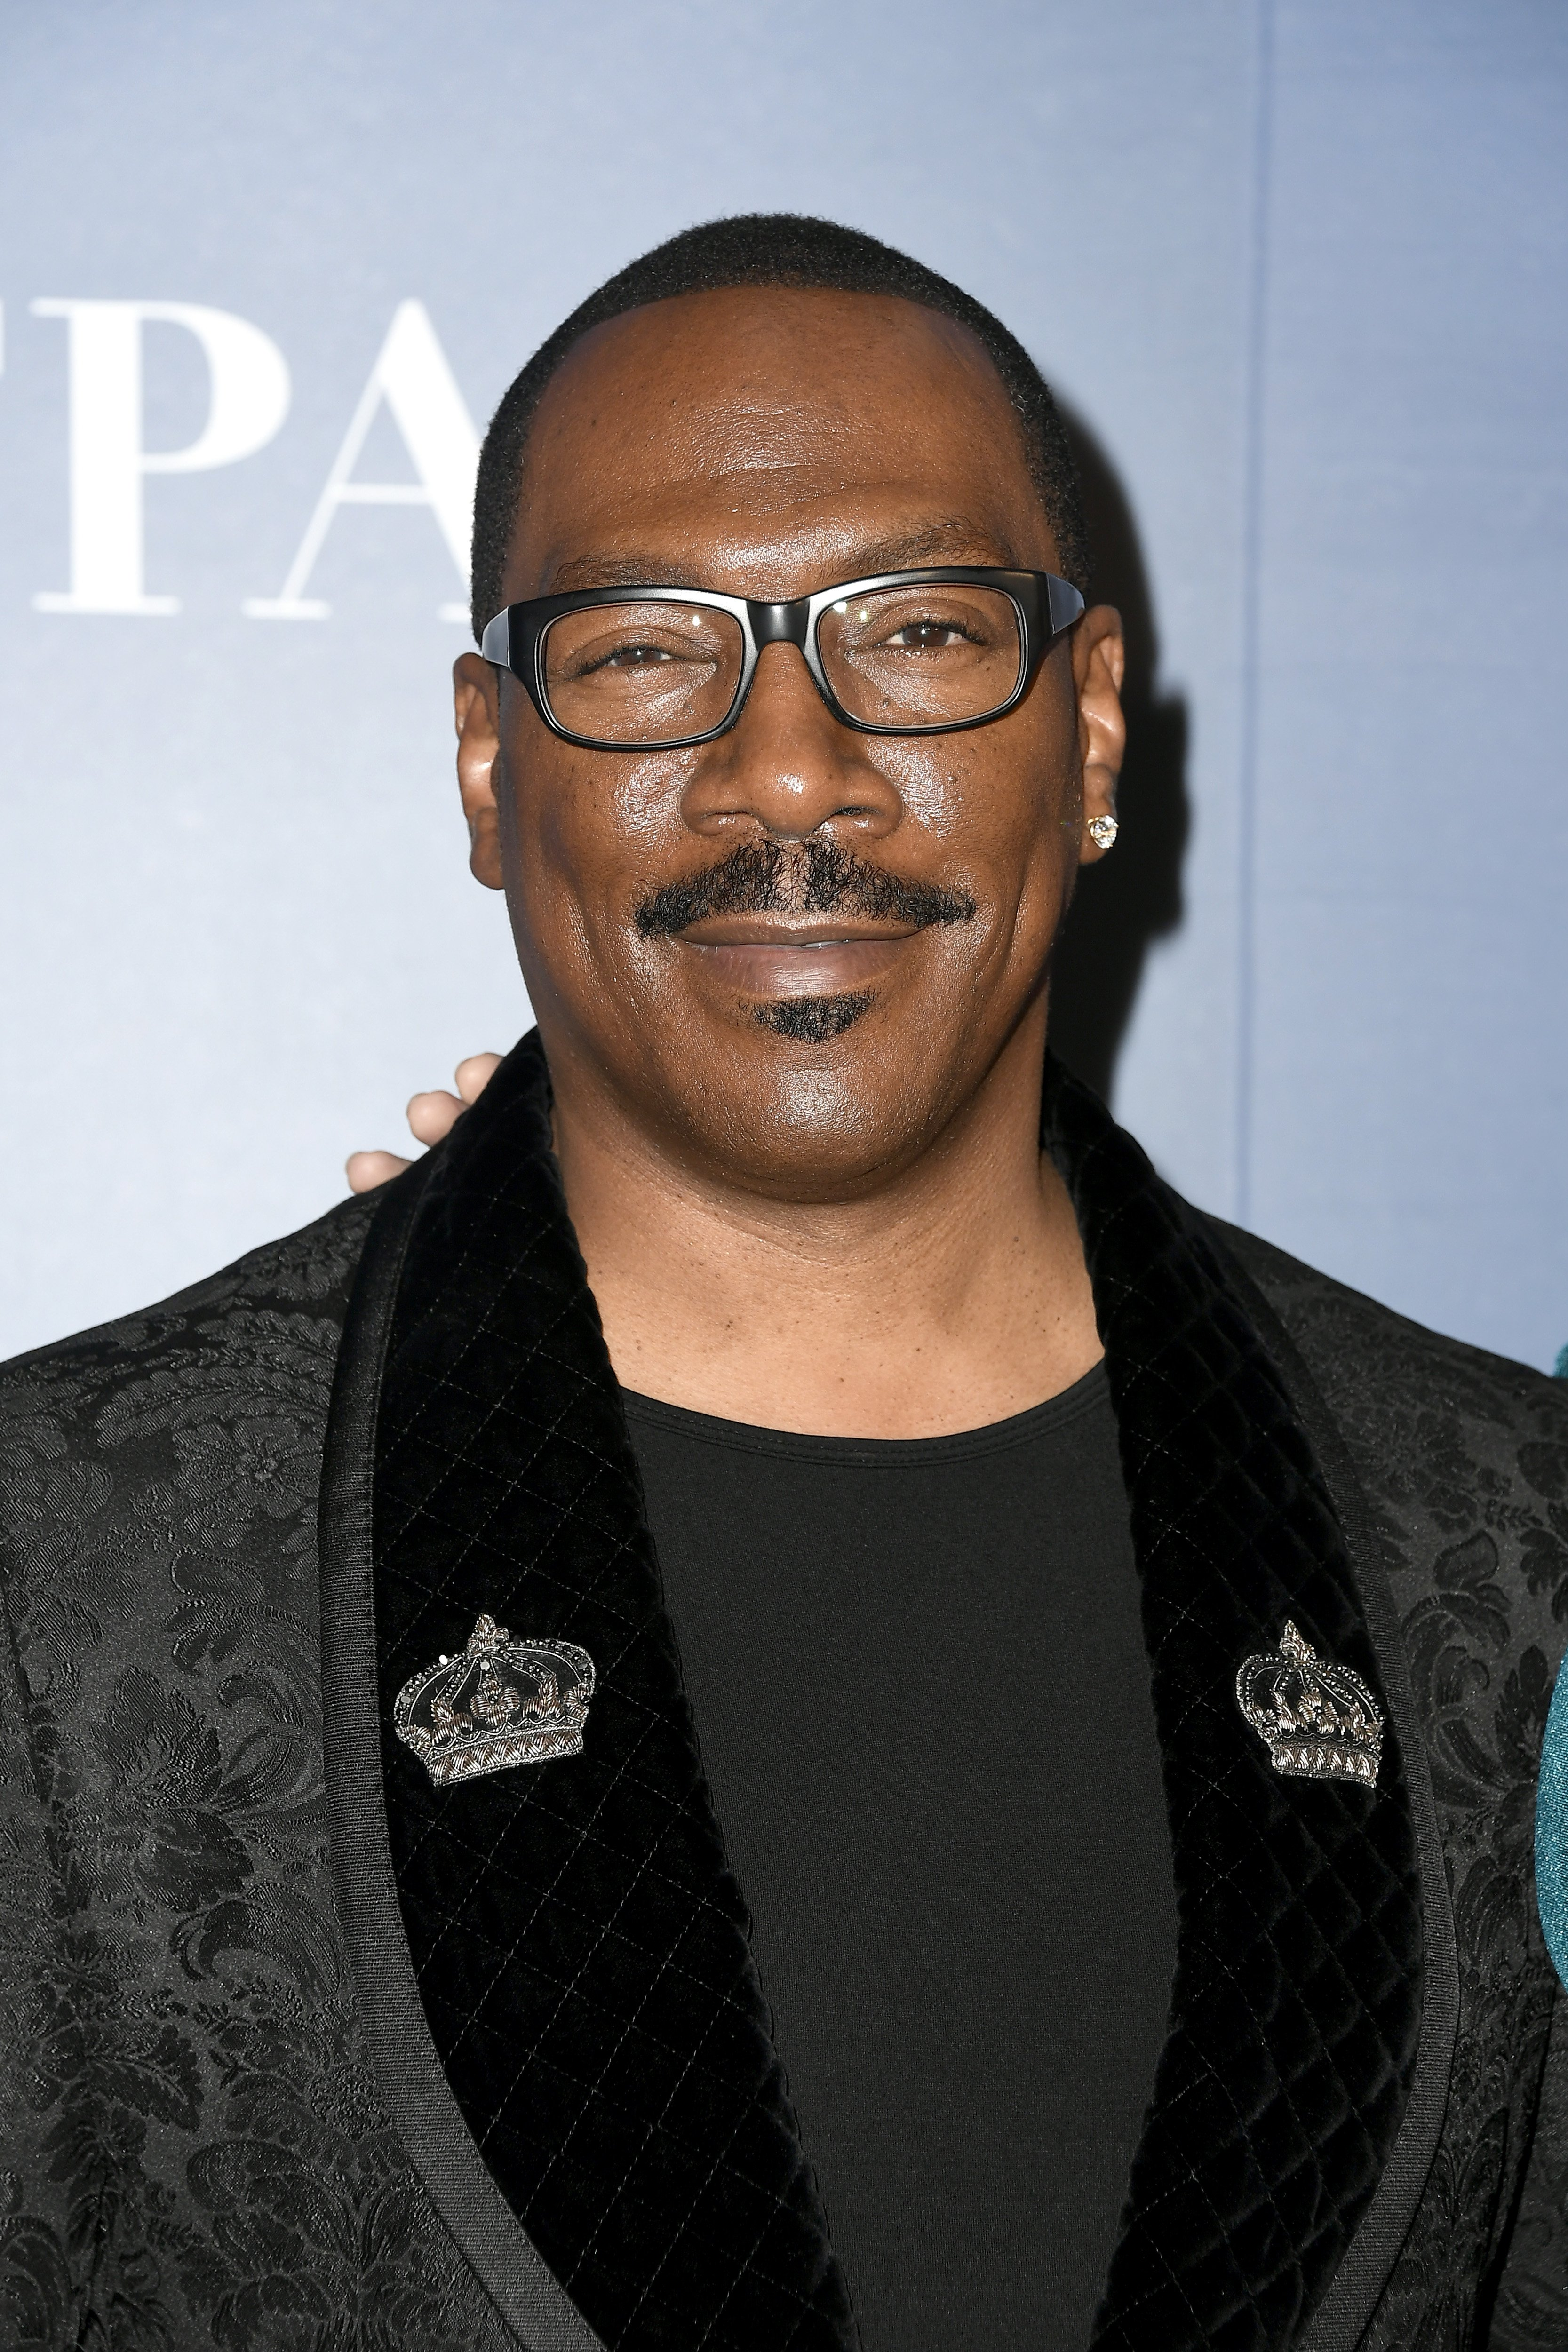 Eddie Murphy at the HFPA/THR TIFF PARTY at the Four Seasons Hotel in Toronto, Canada | Photo by Frazer Harrison/Getty Images